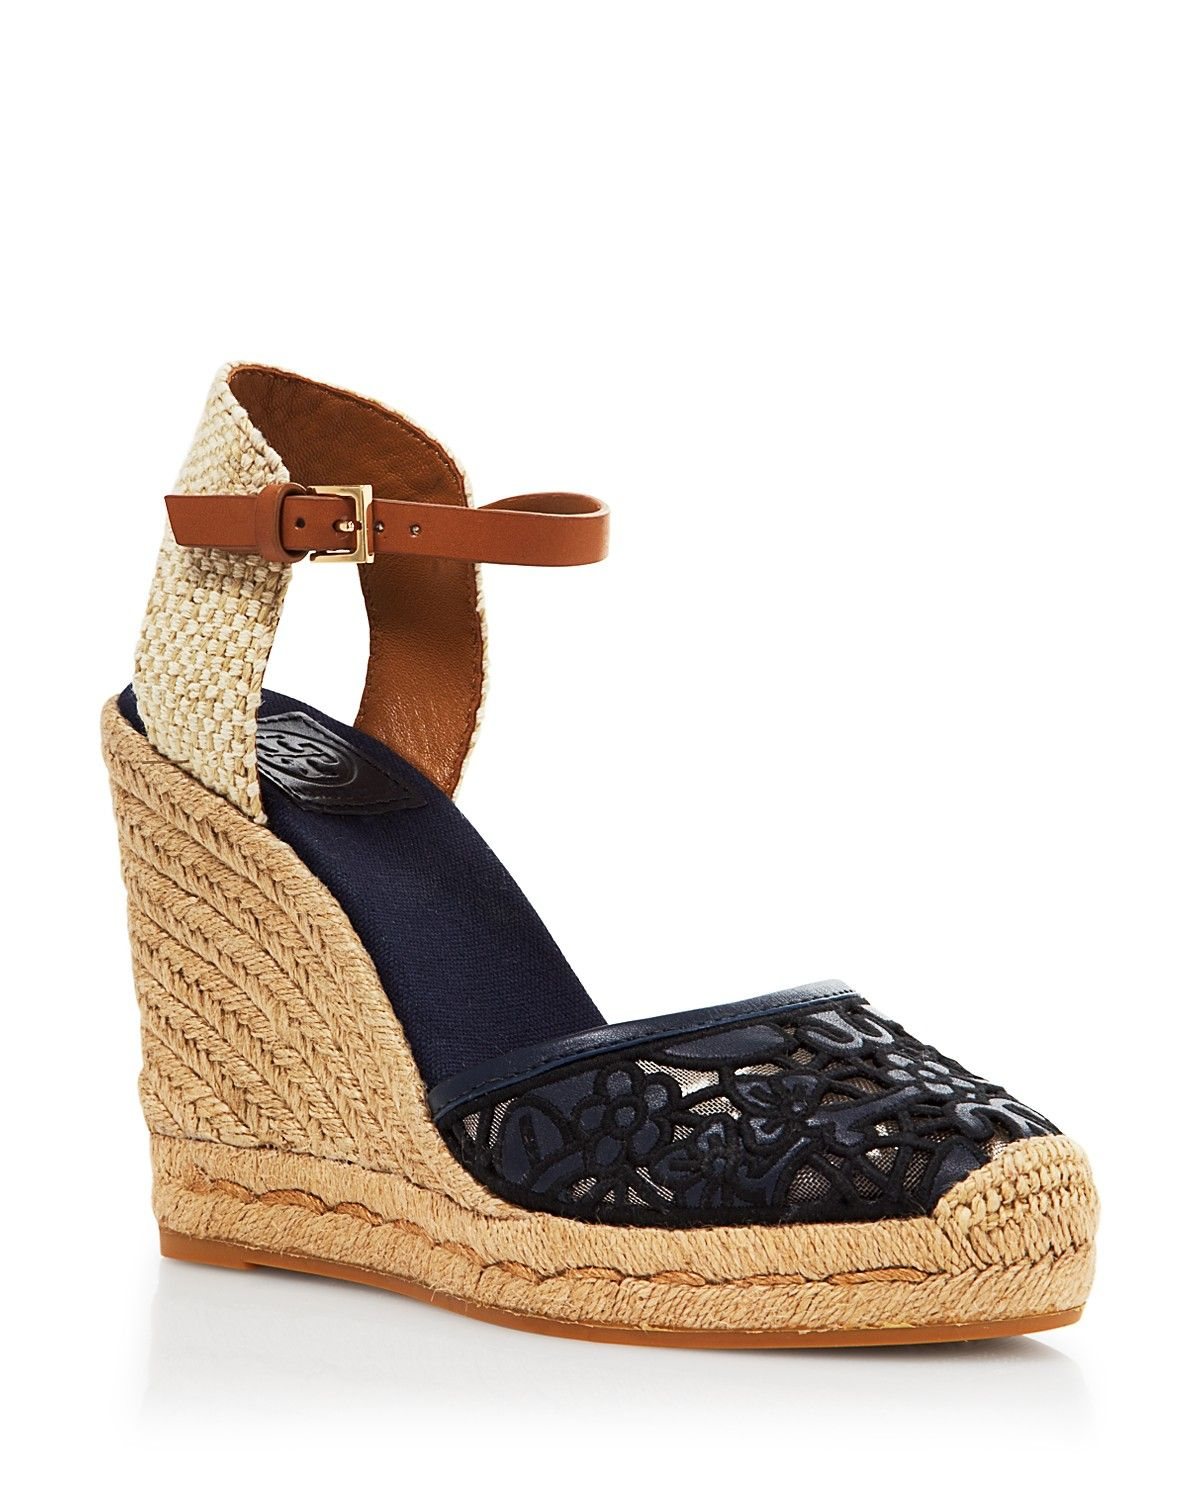 079697290 Tory Burch Platform Wedge Espadrille Sandals - Lucia Lace ...